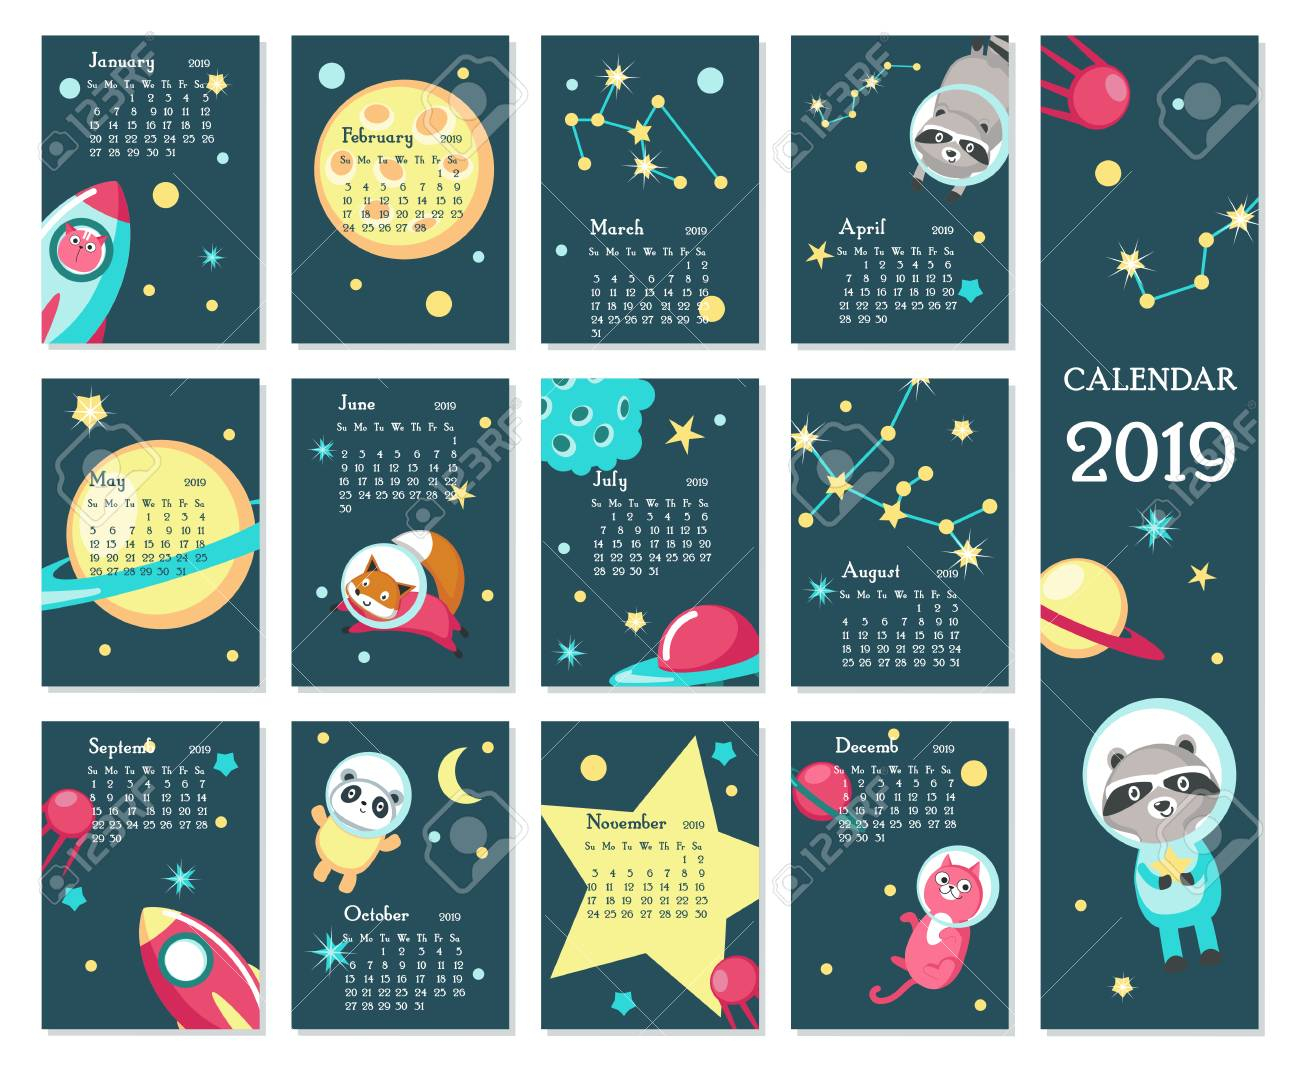 Year 2019 Calendar Vector Template. Yearly Calendar Showing Months.. throughout Cute Yearly Calendar Template